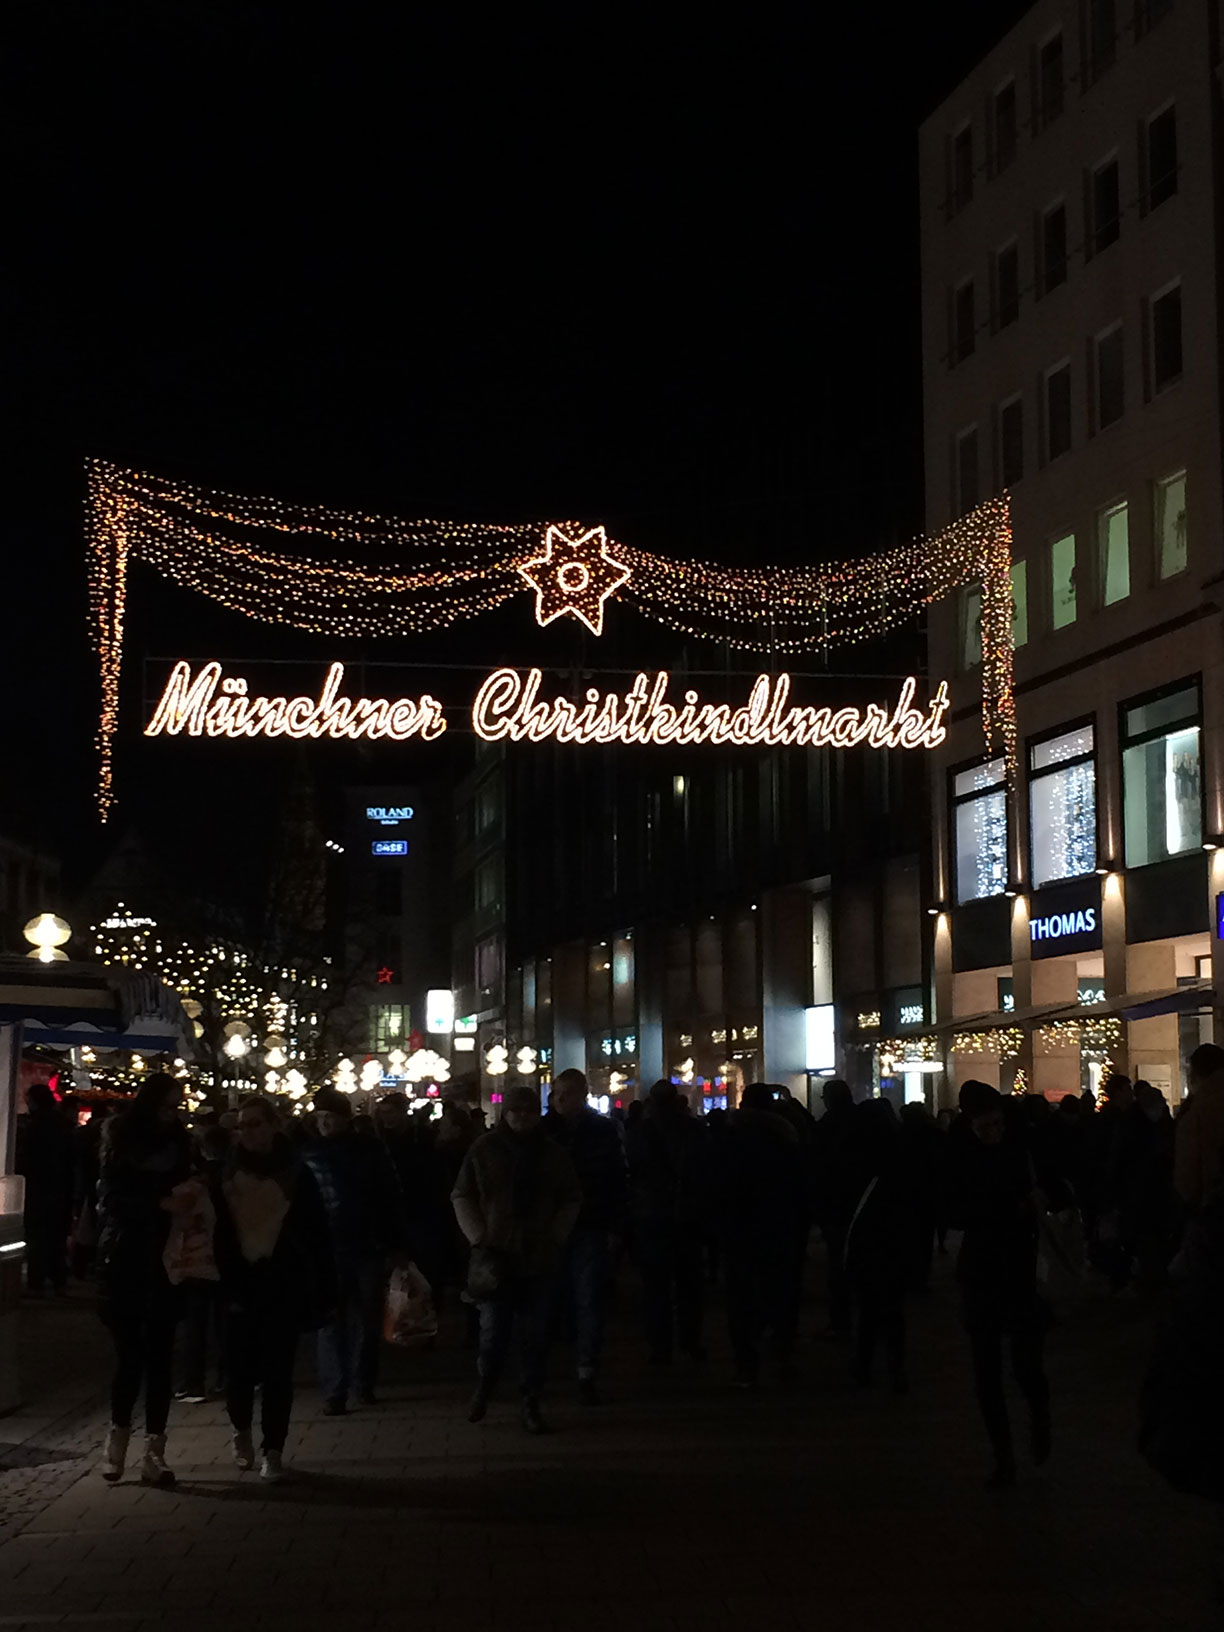 A Christmas Market sign in Munich, Germany.